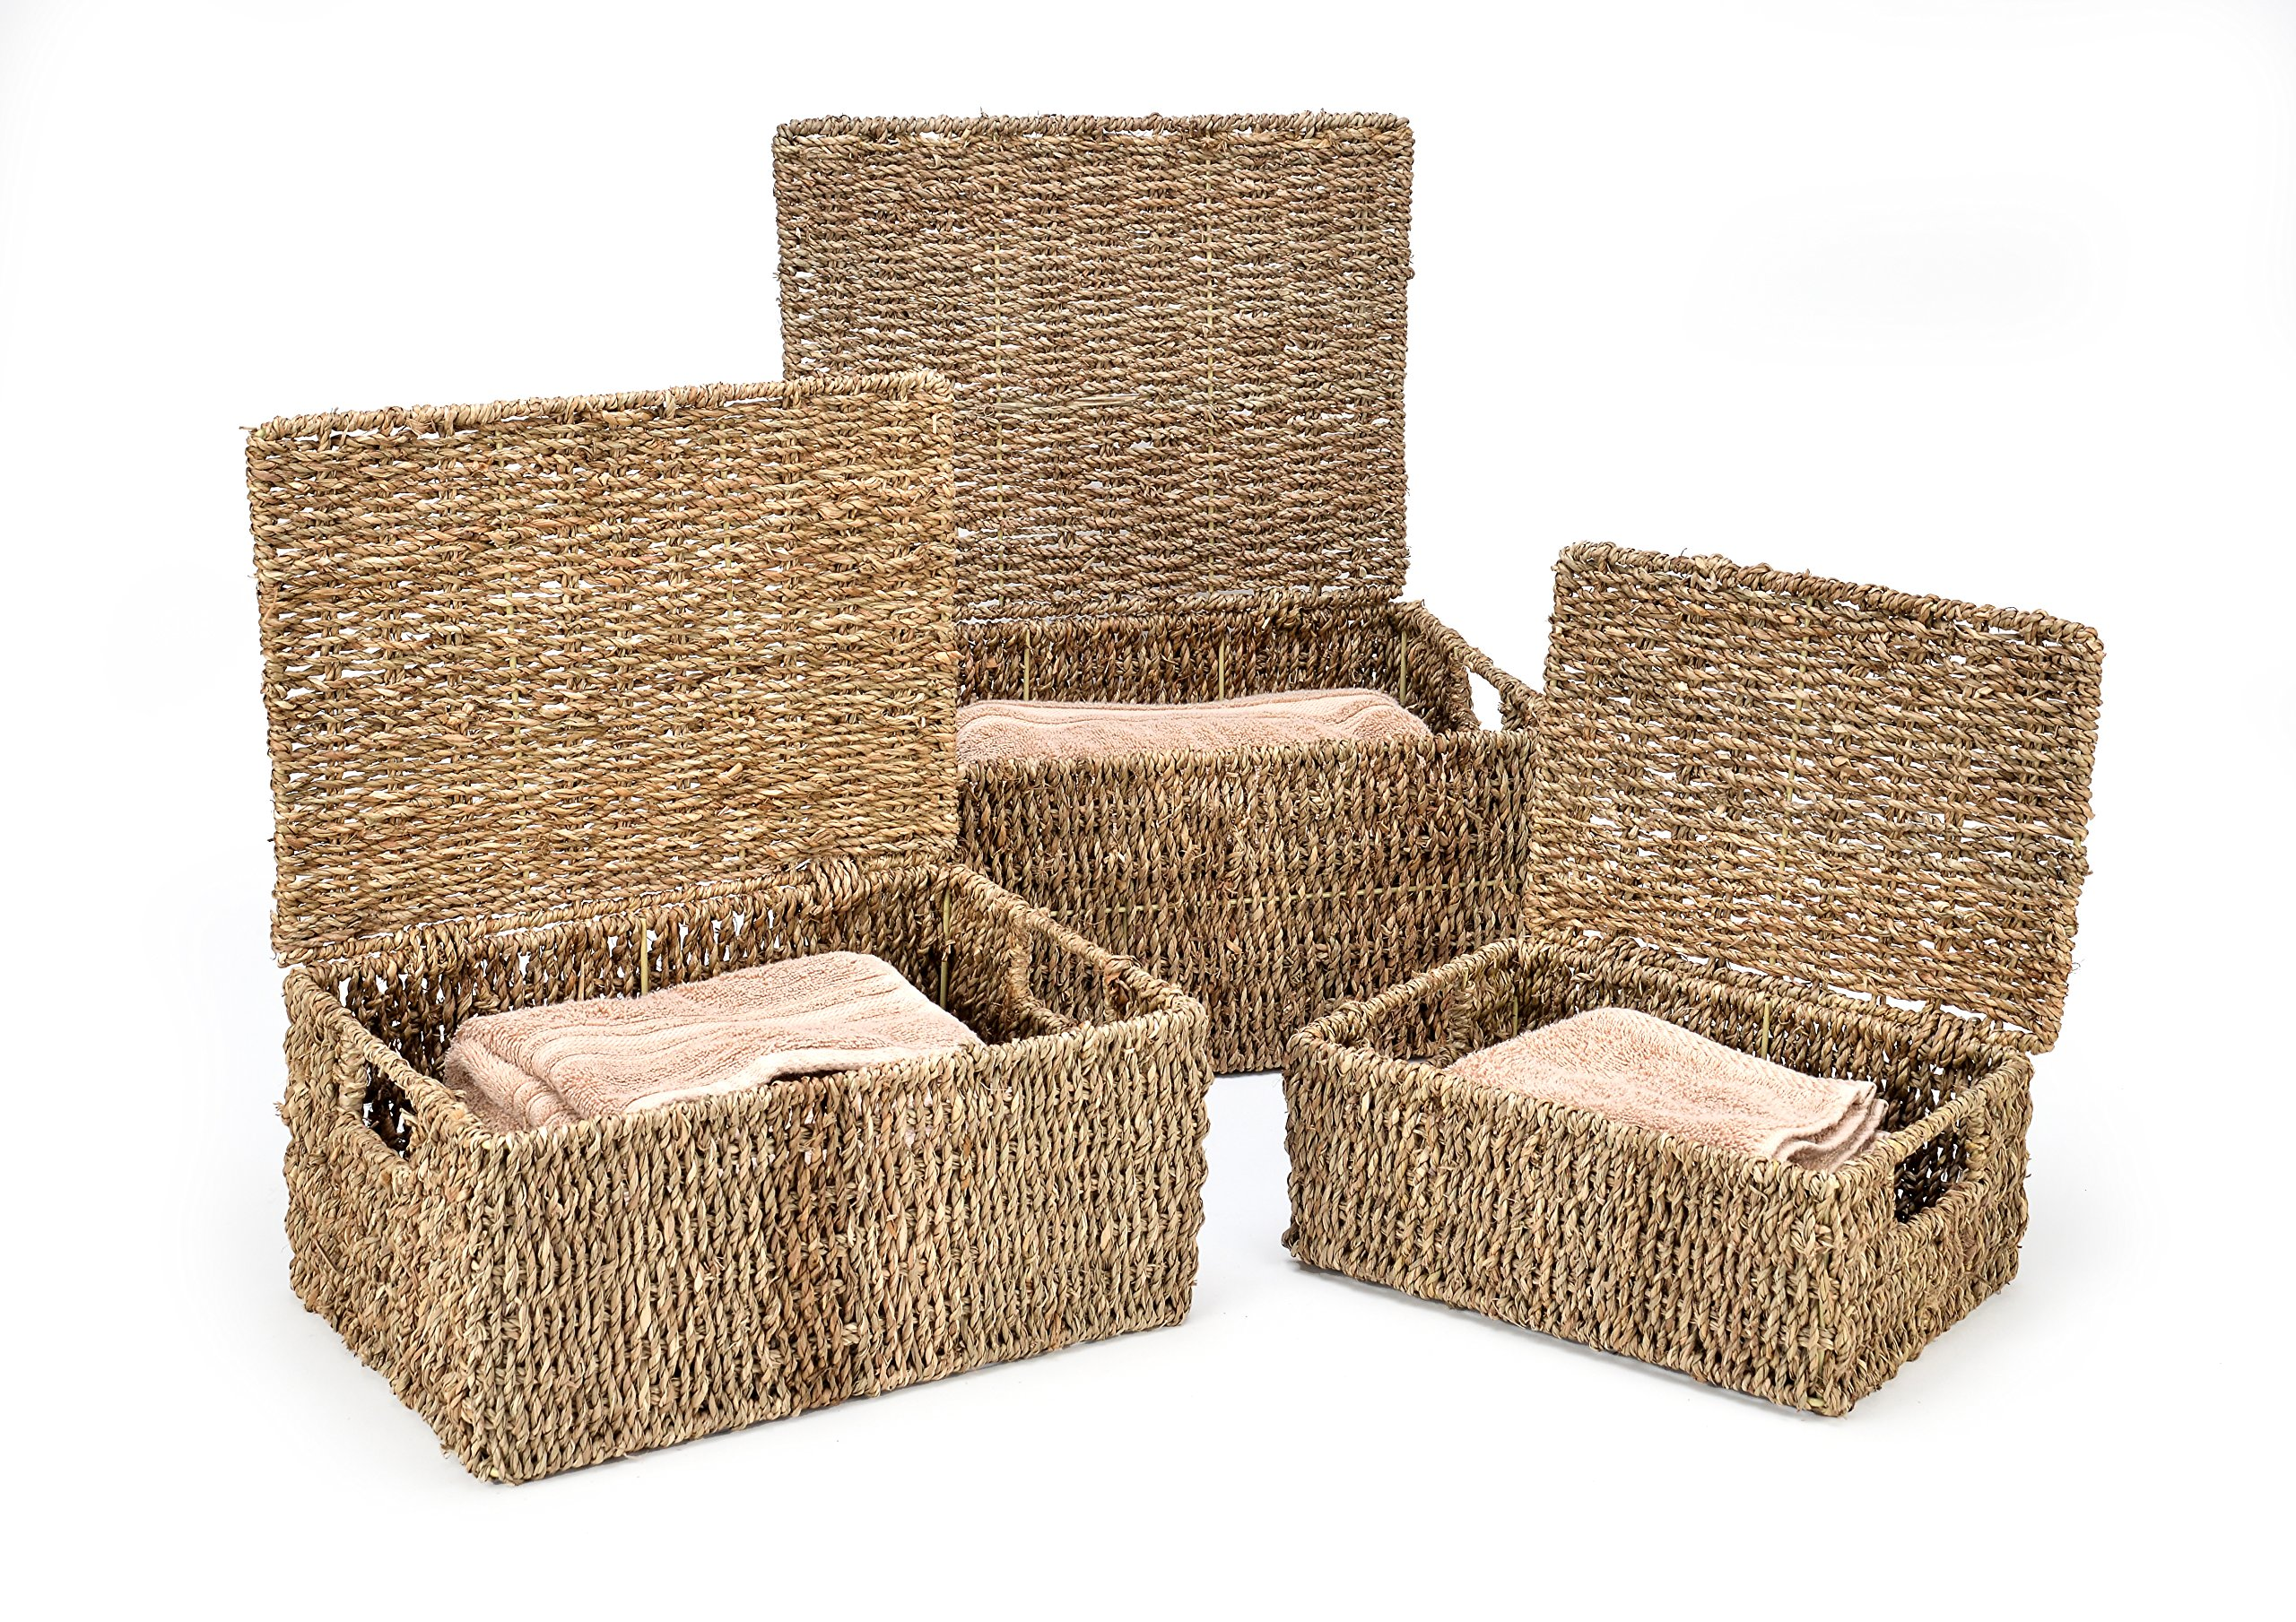 889f8114b4f9 Amazon.com  Trademark Innovations Rectangular Seagrass Baskets Lids (Set of  3) Brown  Home   Kitchen